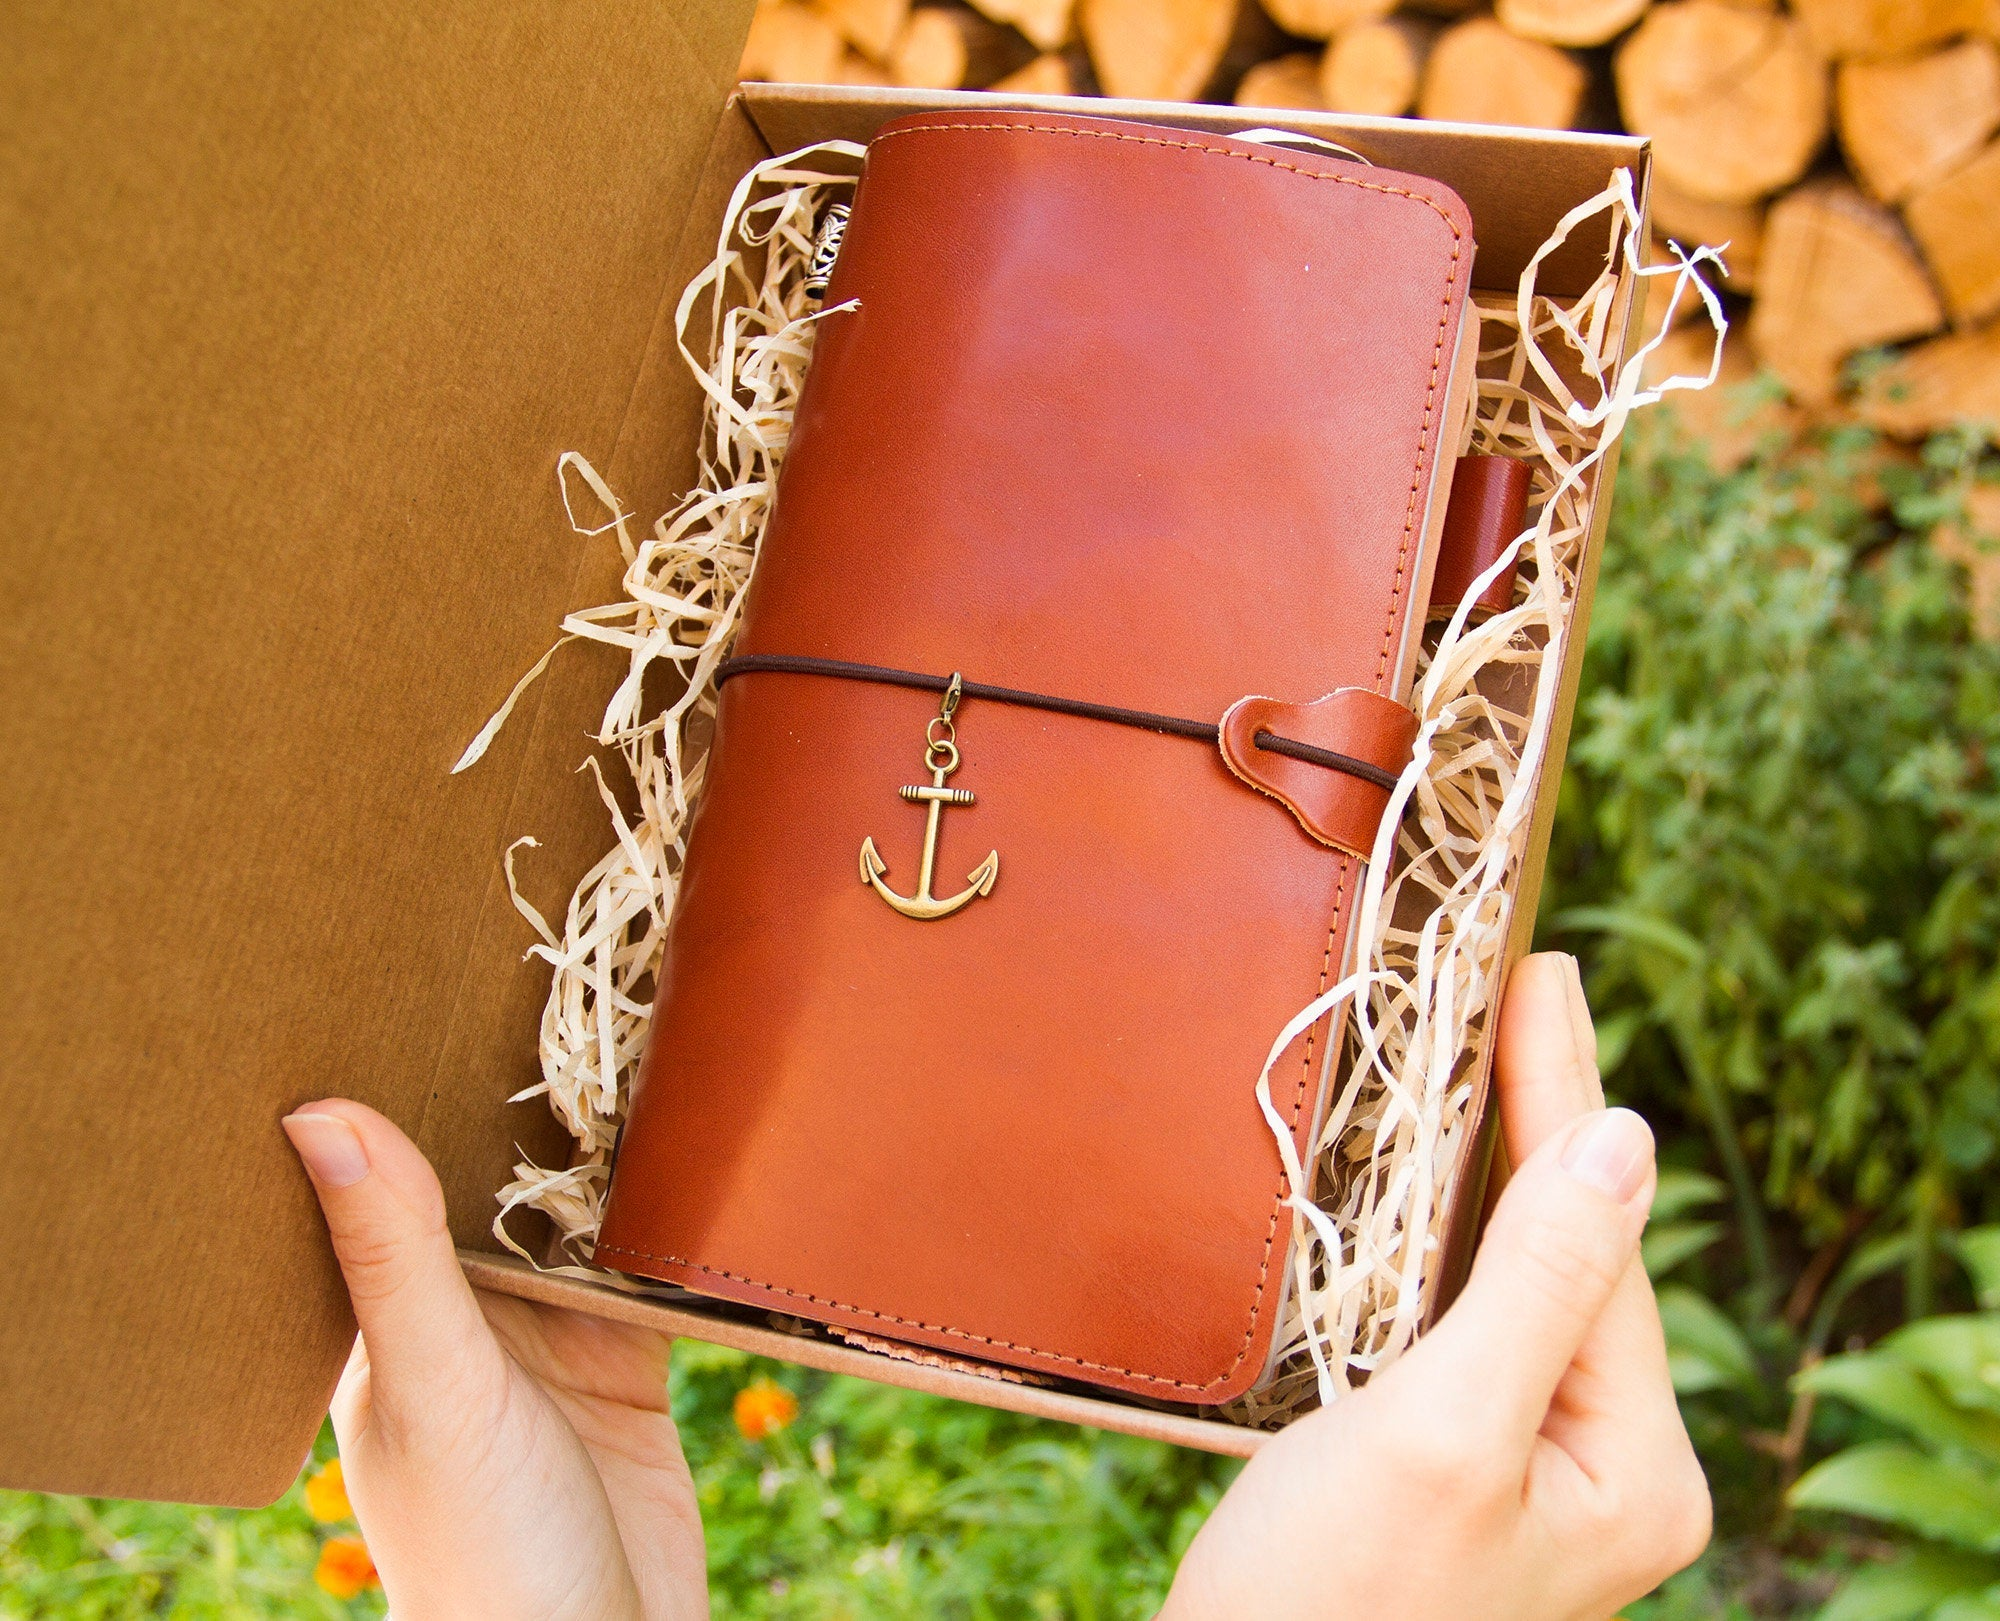 Travelers Notebook Regular Cognac Leather Anchor Travelers Leather Notebook with Original Inserts Planner